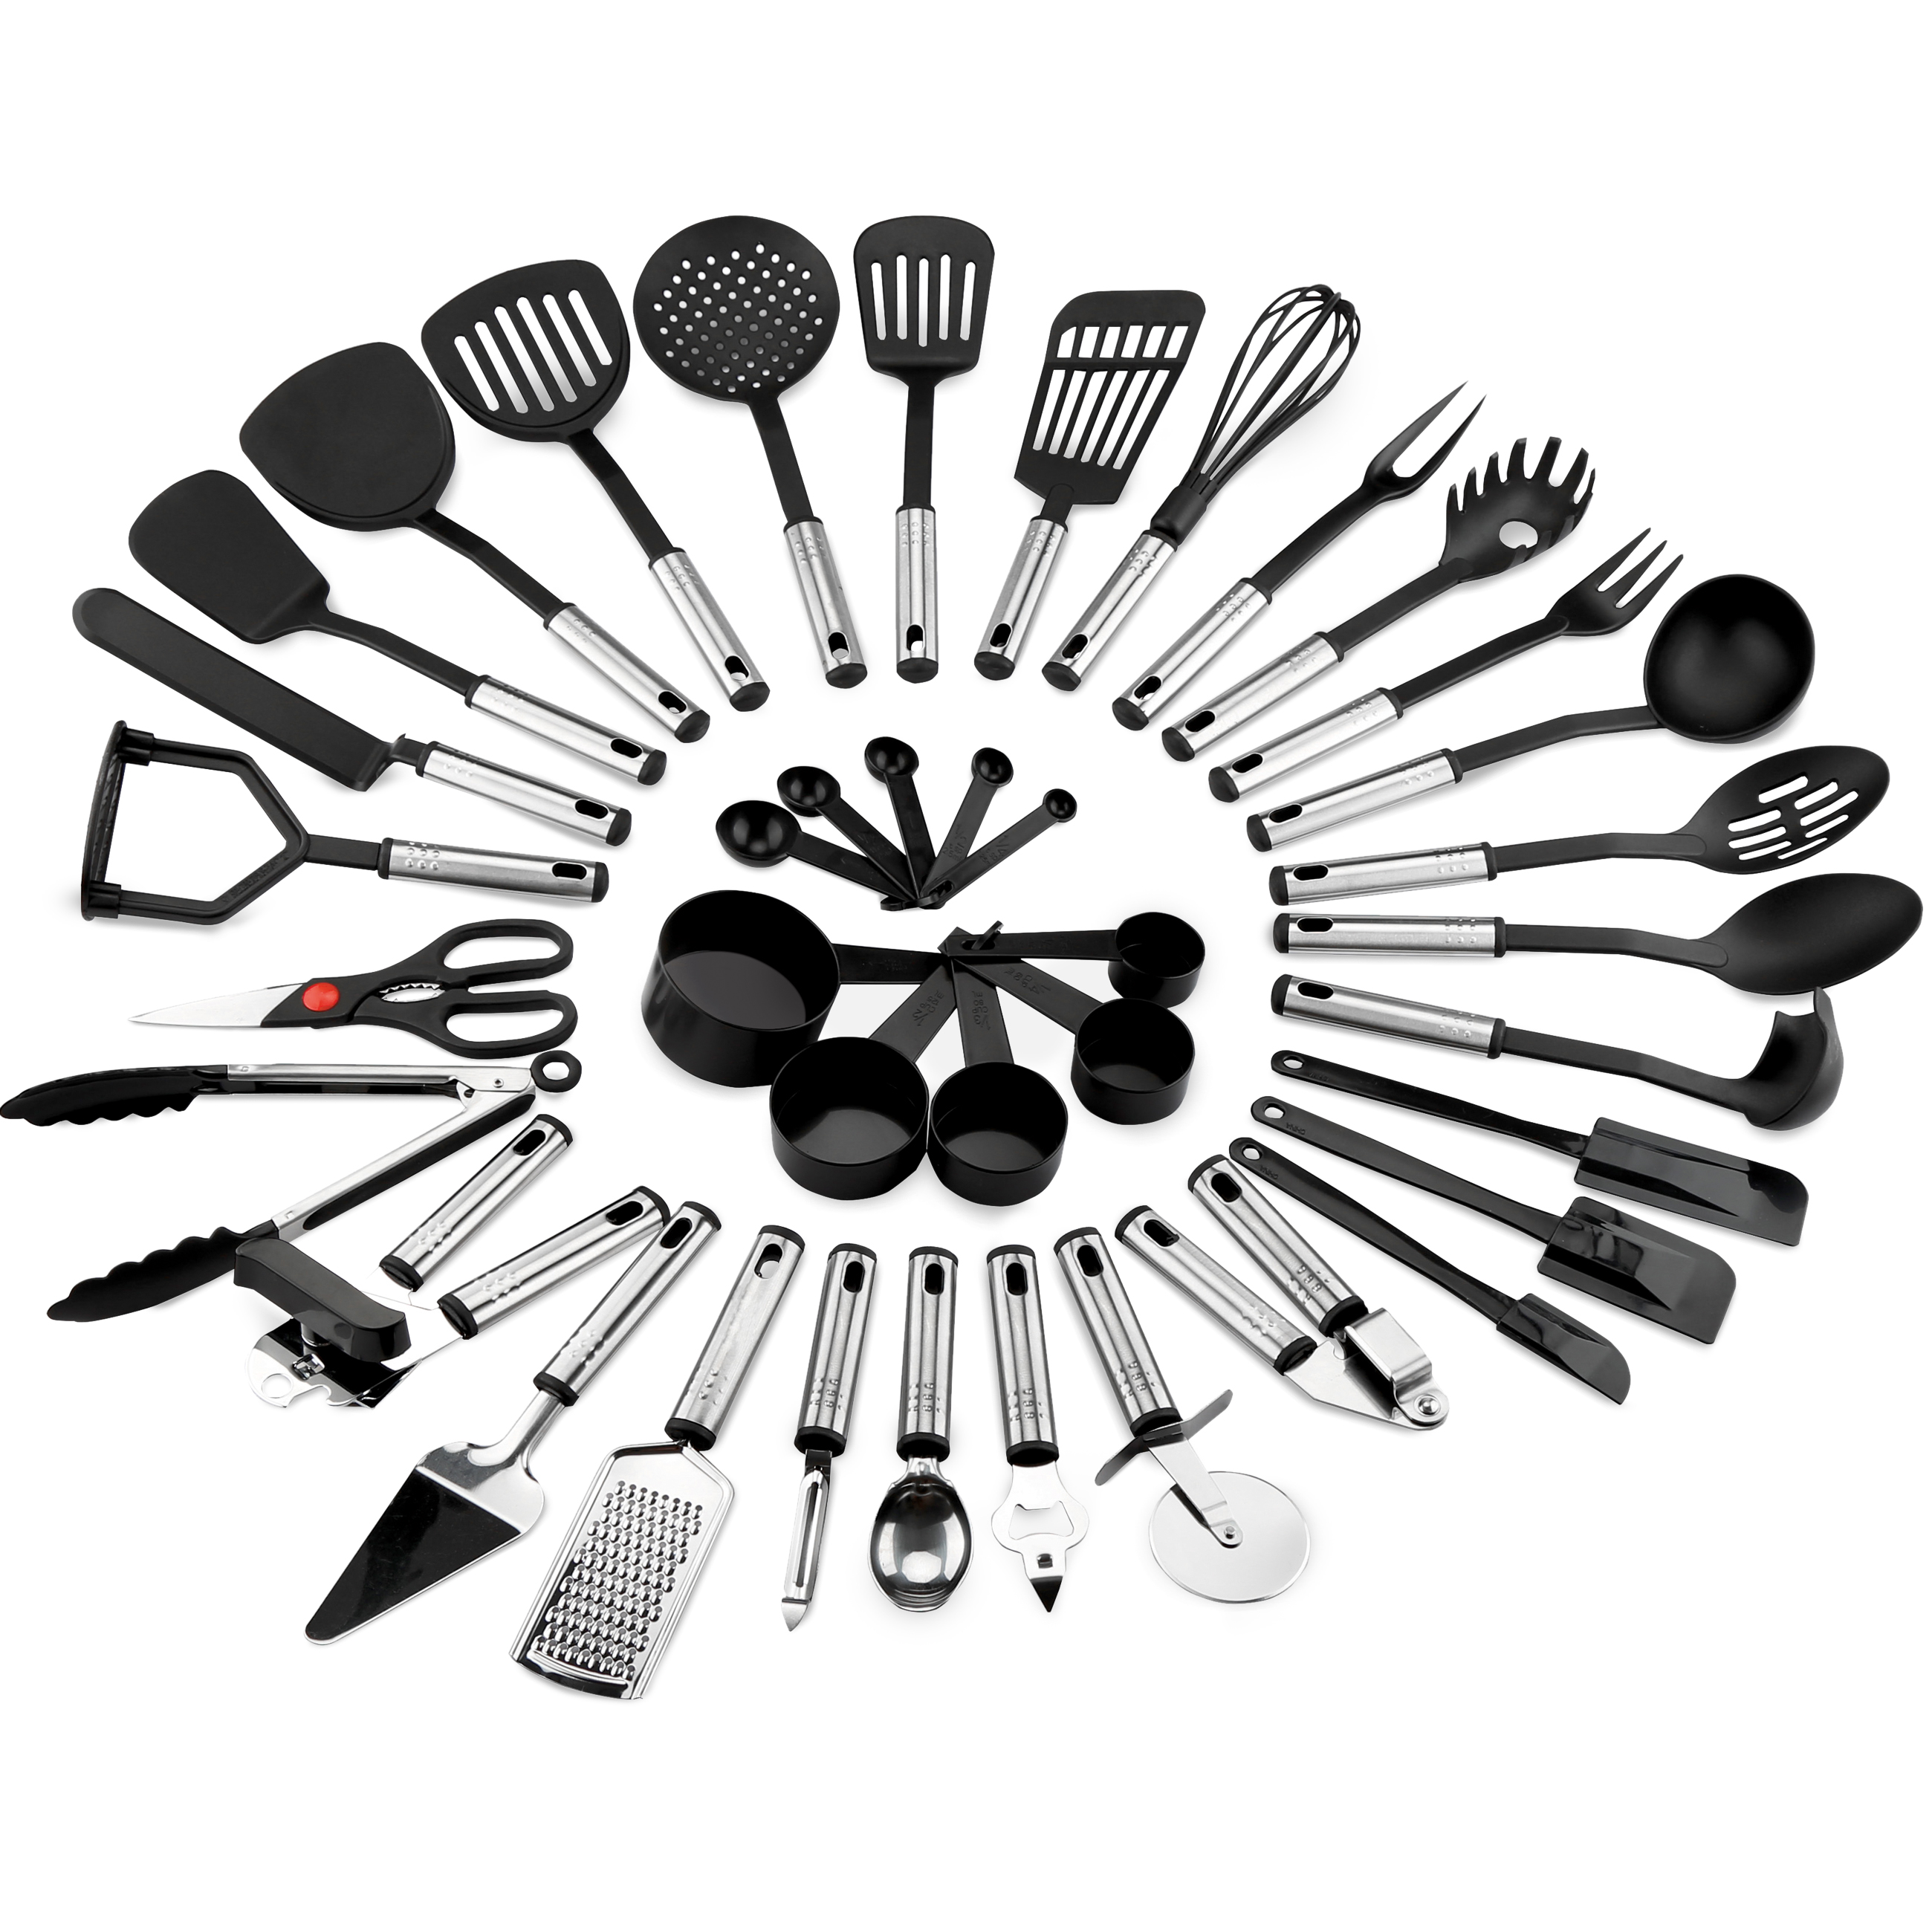 Best Choice Products 39-Piece Stainless Steel and Nylon Cooking Tool Utensil Set for Scratch-Free Dishes Black... by Best Choice Products